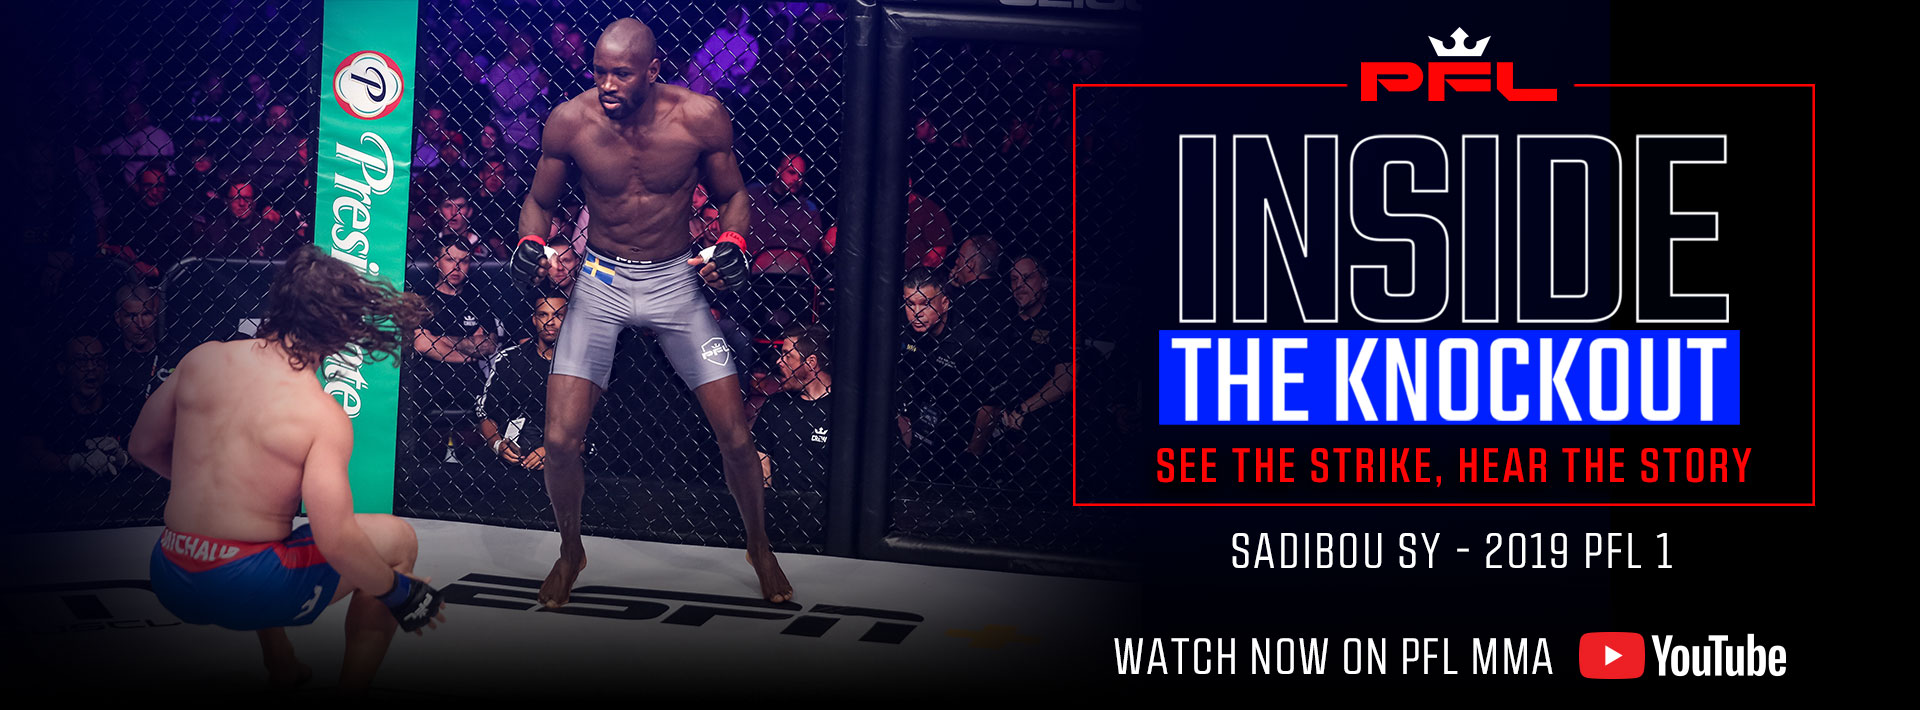 "Professional Fighters League Launches Three New Episodes Of ""Inside The Knockout"", ""Run It Back"", and ""MMA At Home"" This Week"